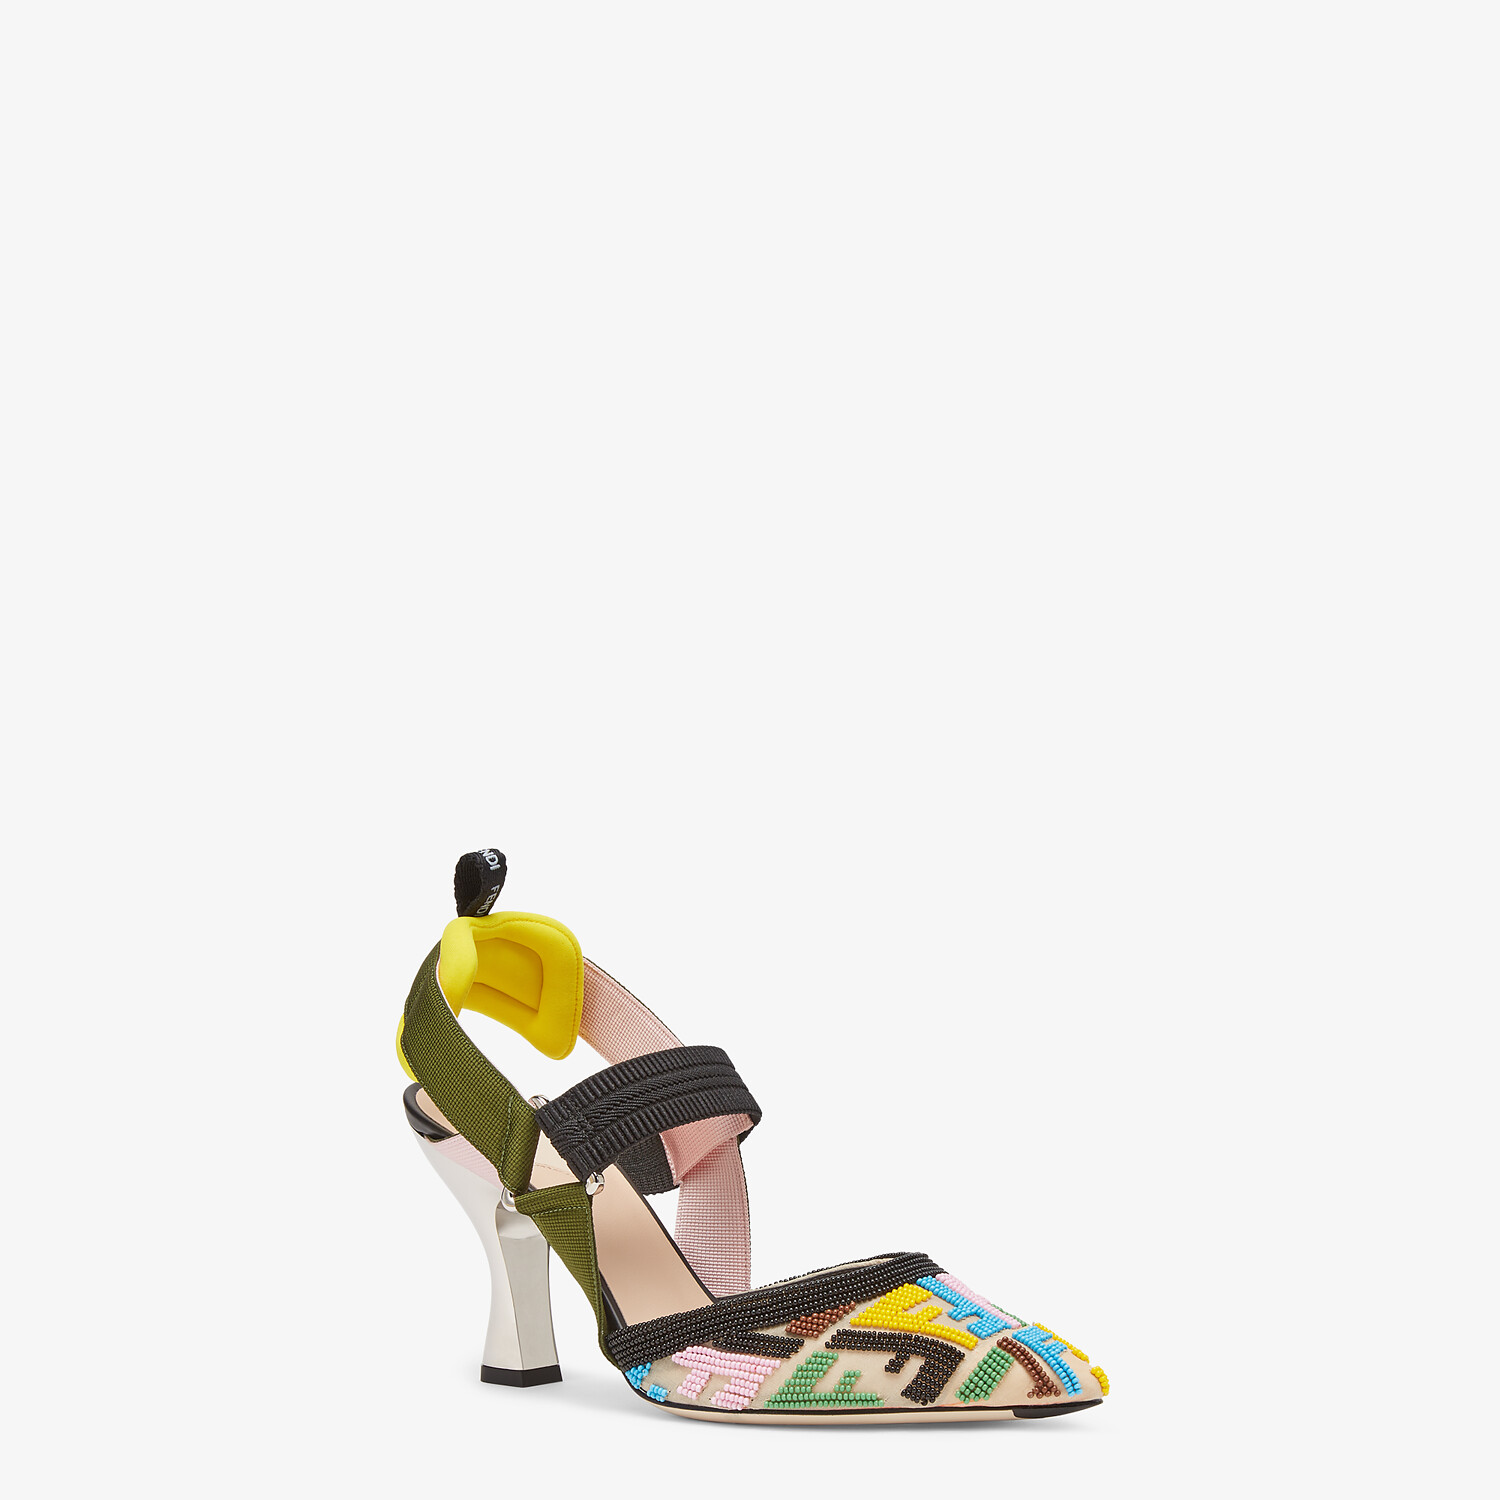 FENDI COLIBRÌ - High-heeled slingbacks with multicolor beads - view 2 detail